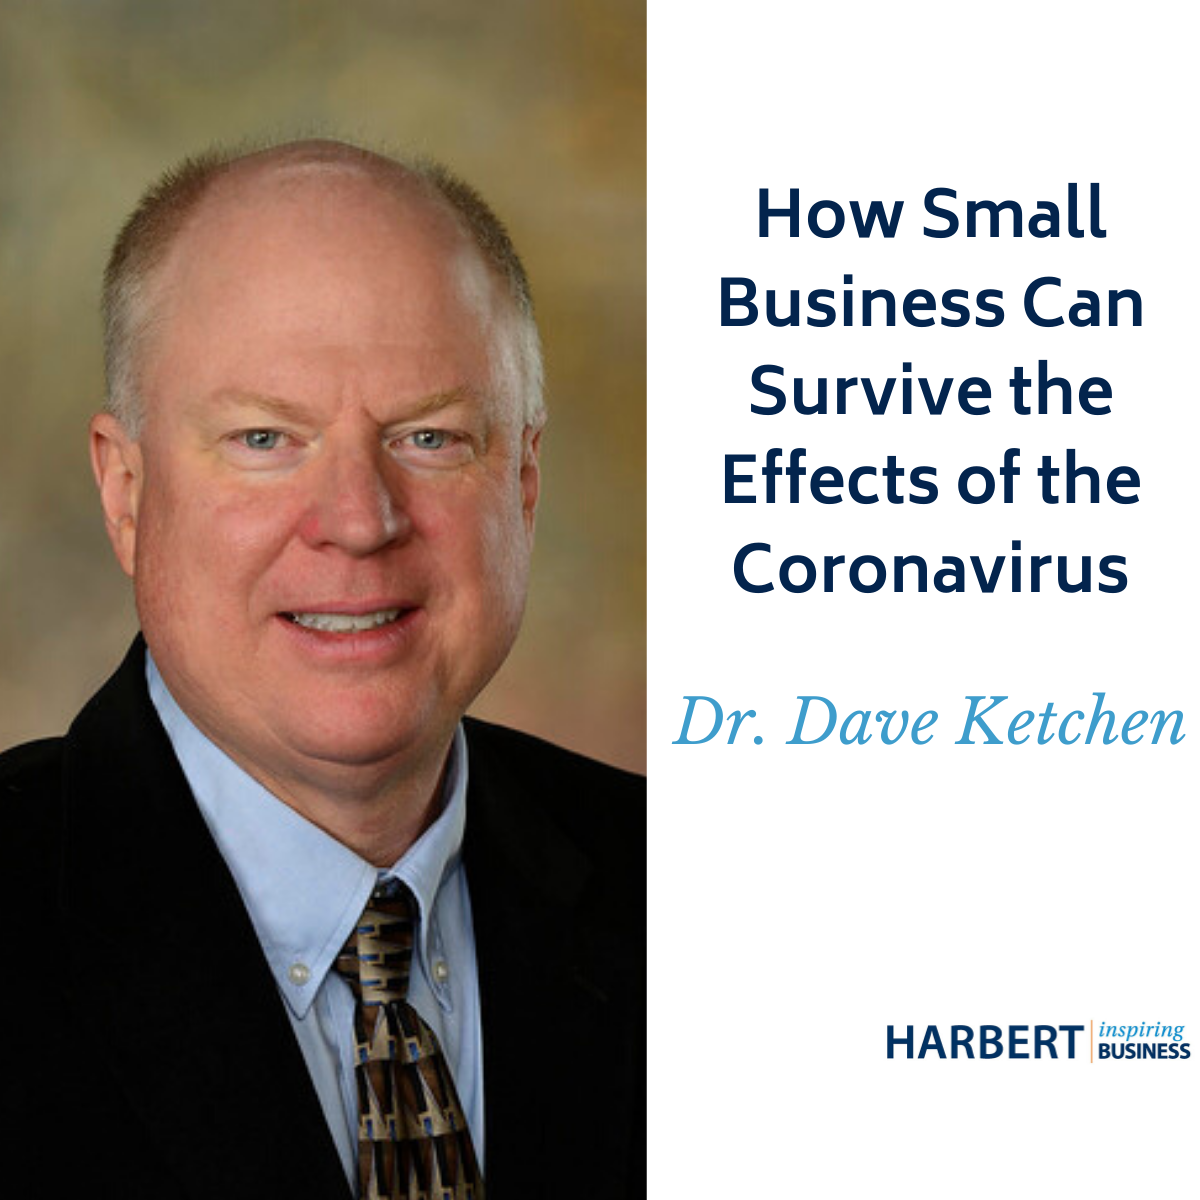 What's hurting small businesses? How can they weather the storm? Dave Ketchen weighs in